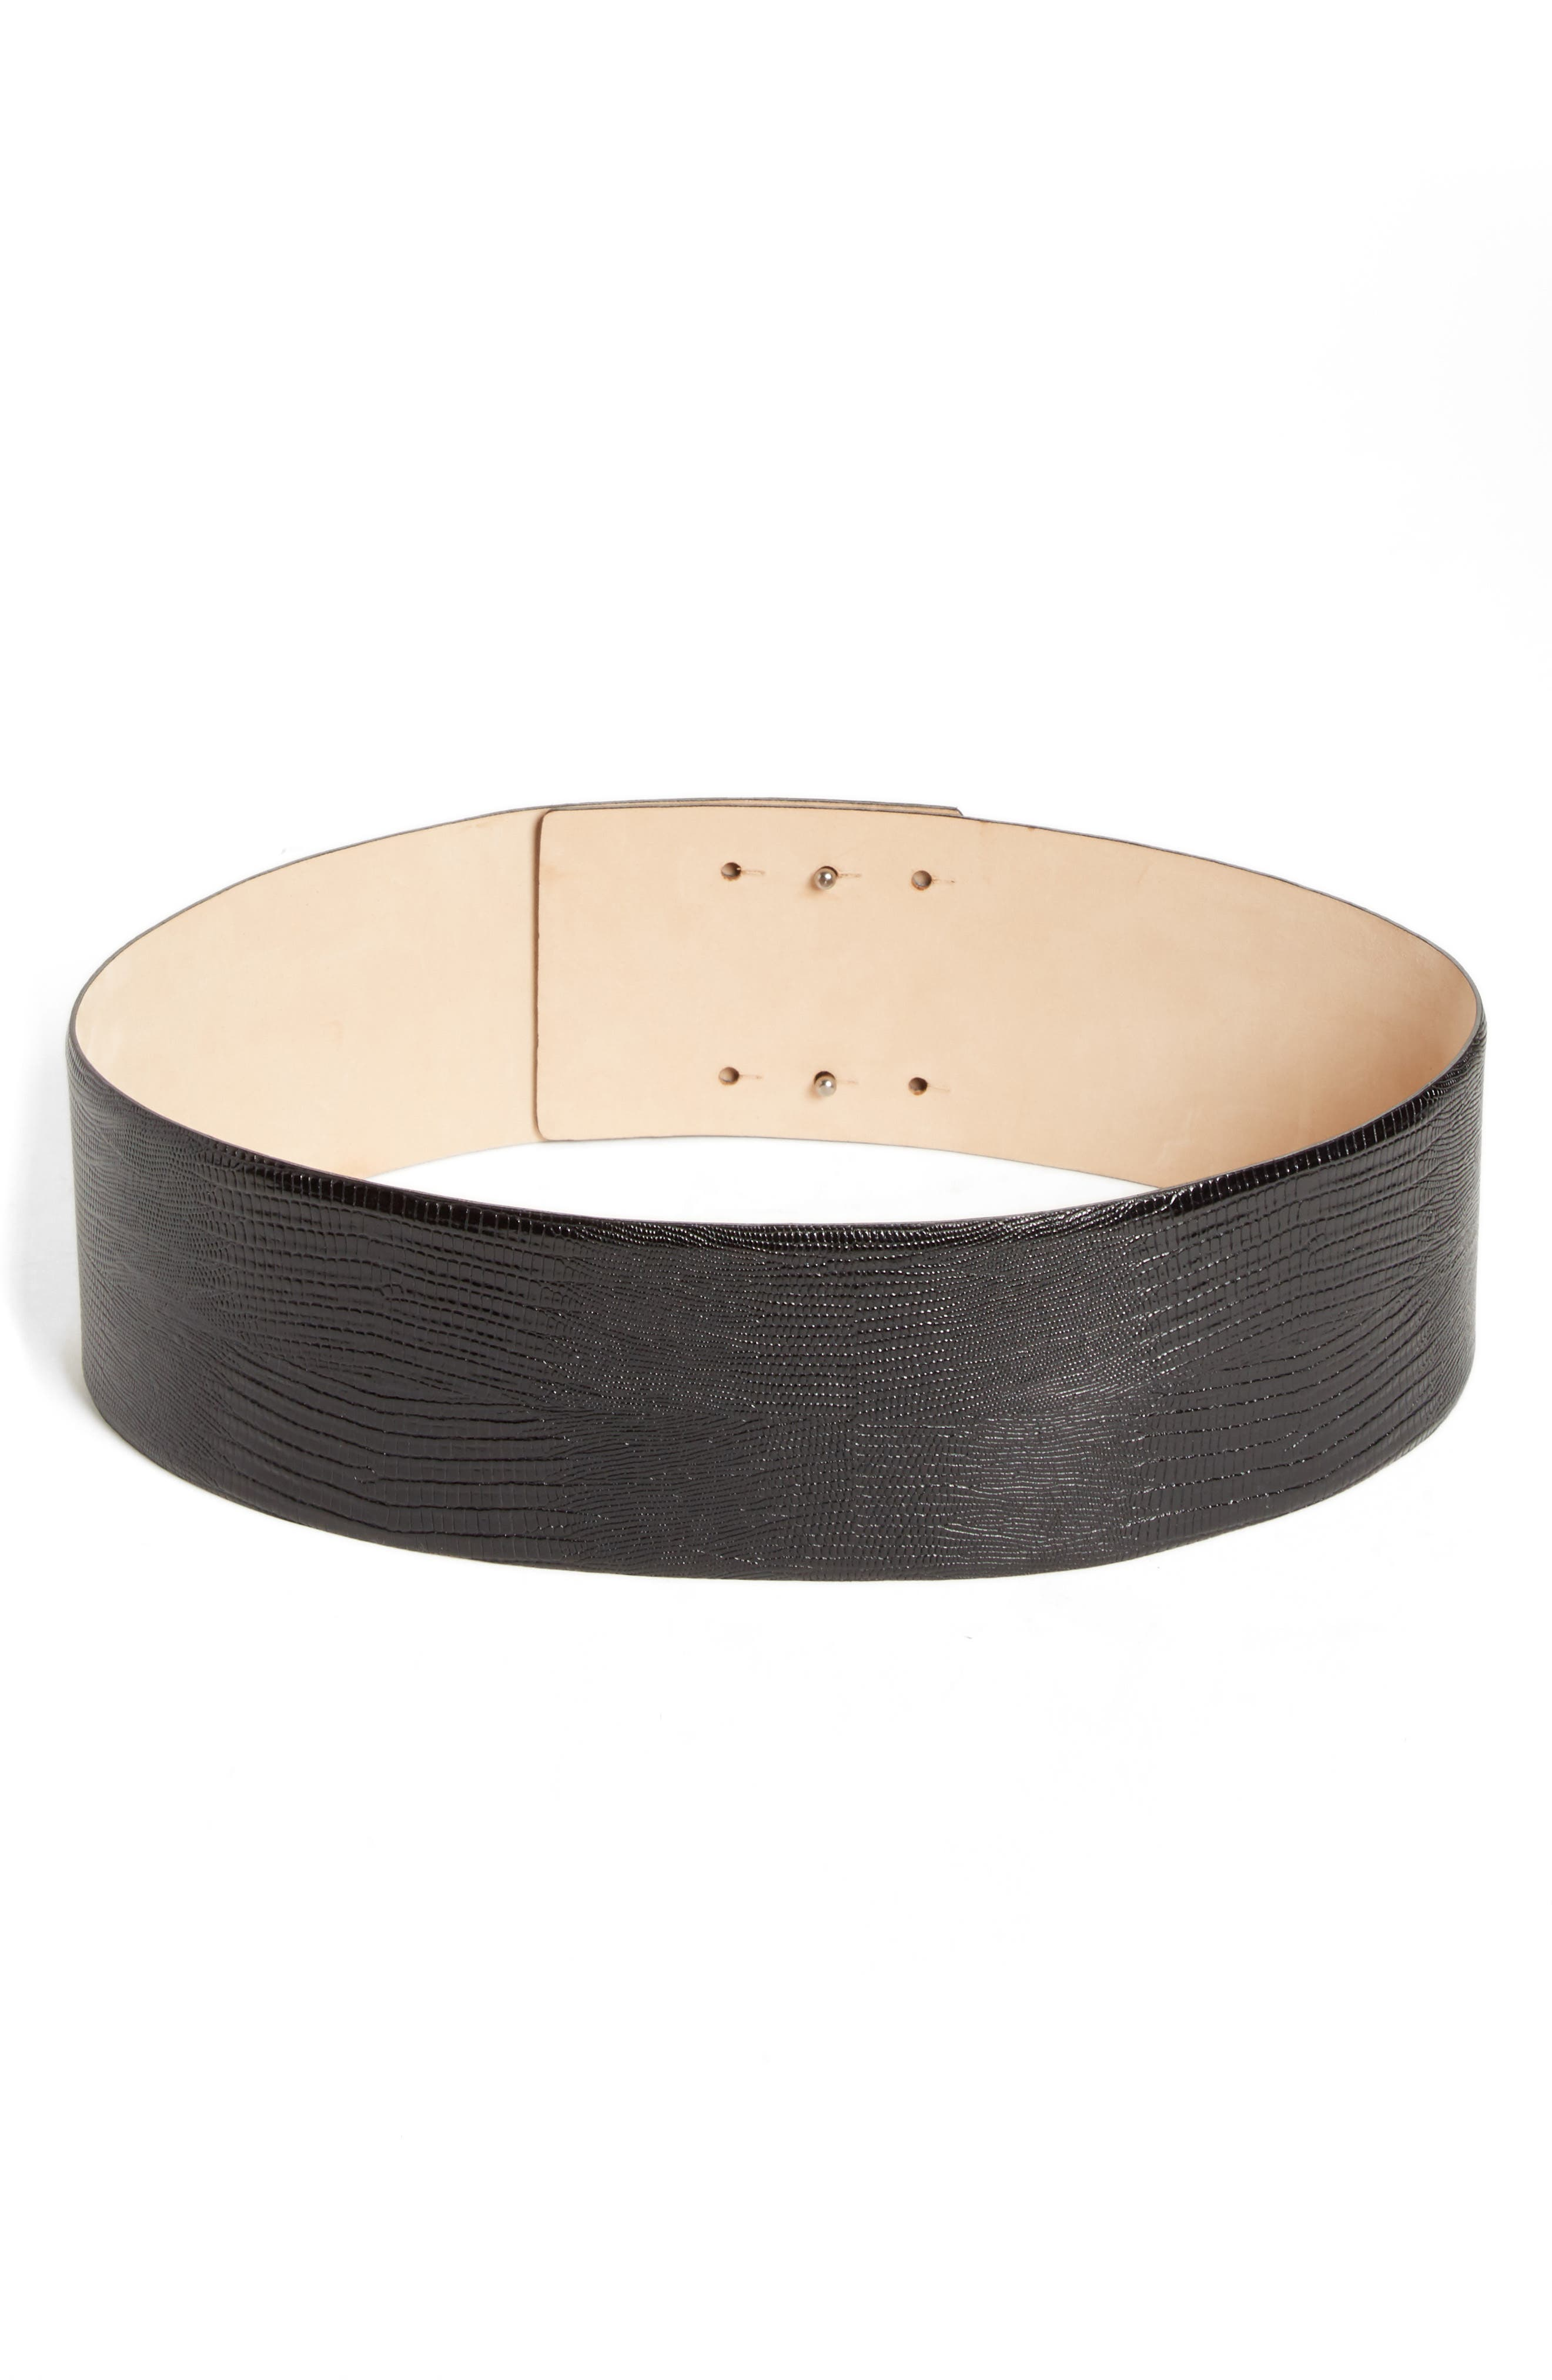 Reptile Embossed Leather Belt,                             Main thumbnail 1, color,                             001